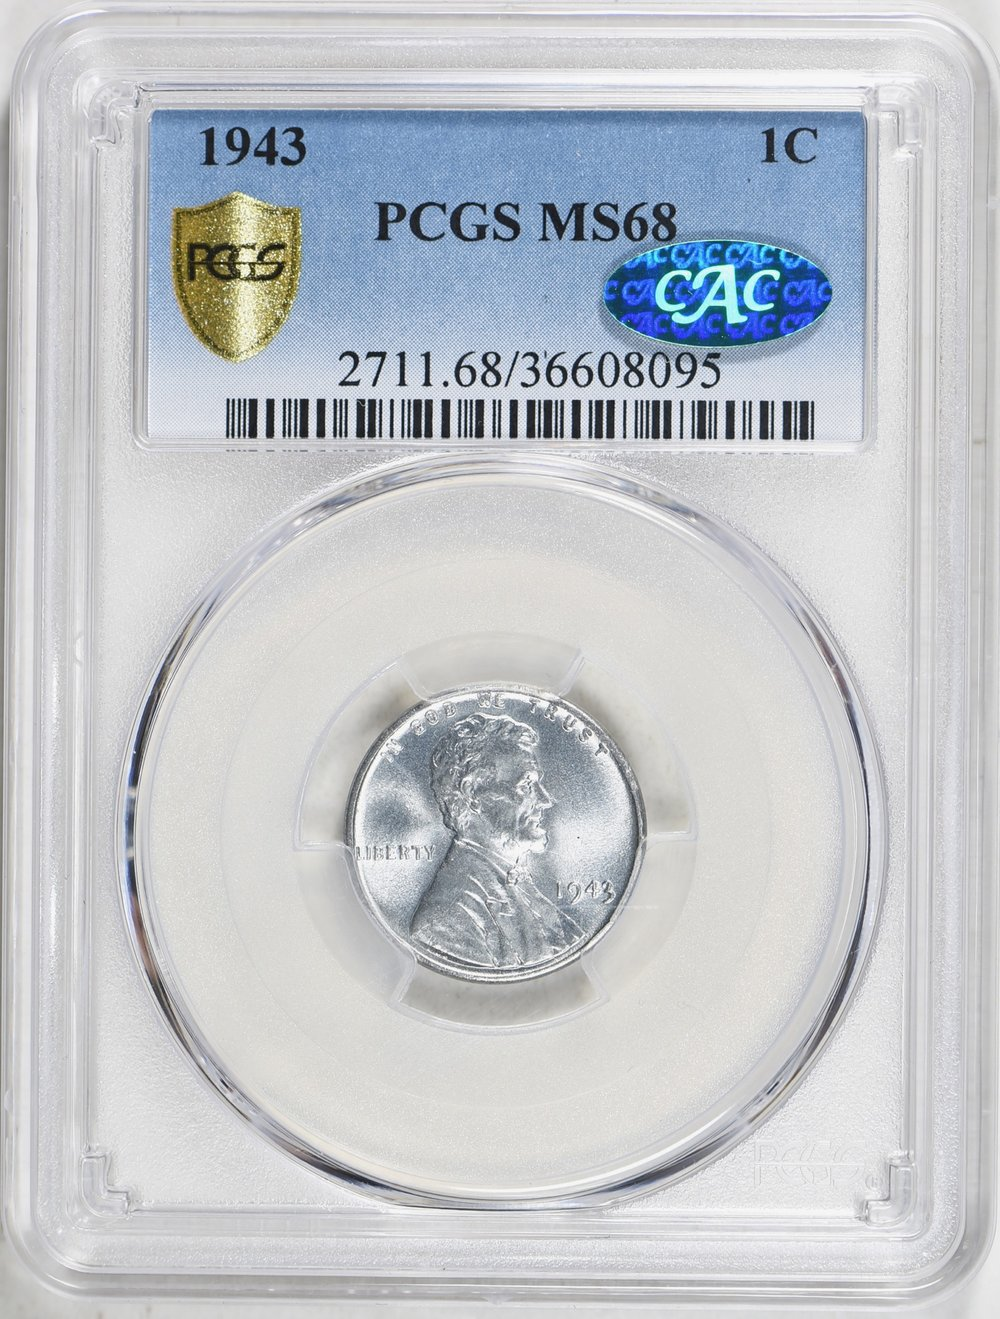 1943 MS68 CAC - Purchased 1/20/19 GreatCollections. Normally I wait to receive (or at least pay) for a coin before posting. My two year hunt for a 1943 MS68 CAC is happily over. A top pop with 54/- PCGS and 8/- in CAC.